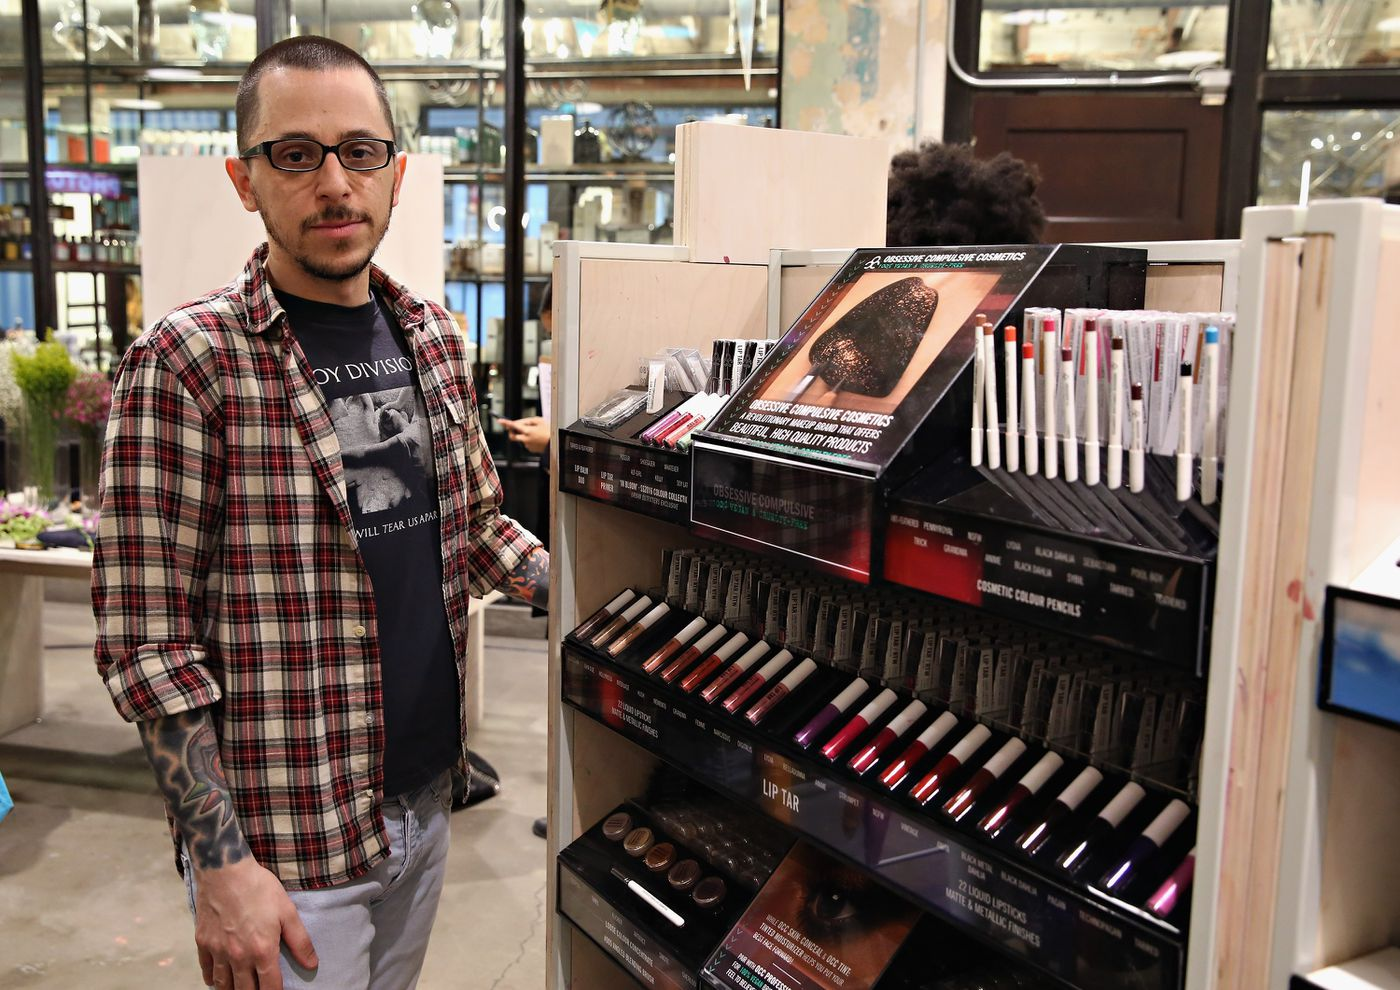 Sephora's OCC Lawsuit Explains How Beauty Products Are Sold - Vox